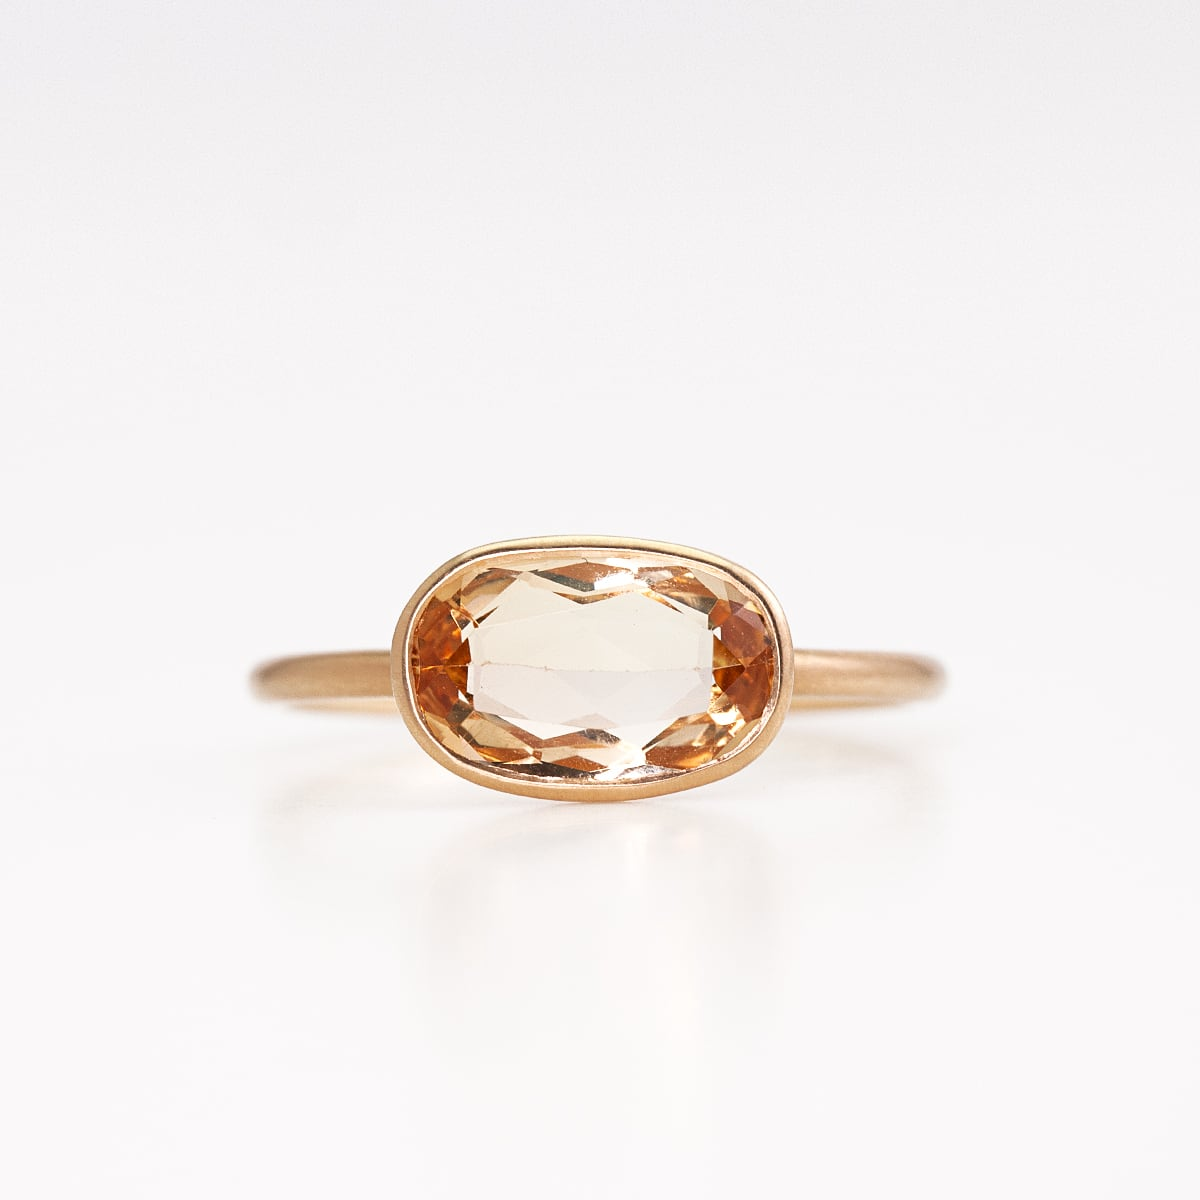 Imperial topaz ring / Oval